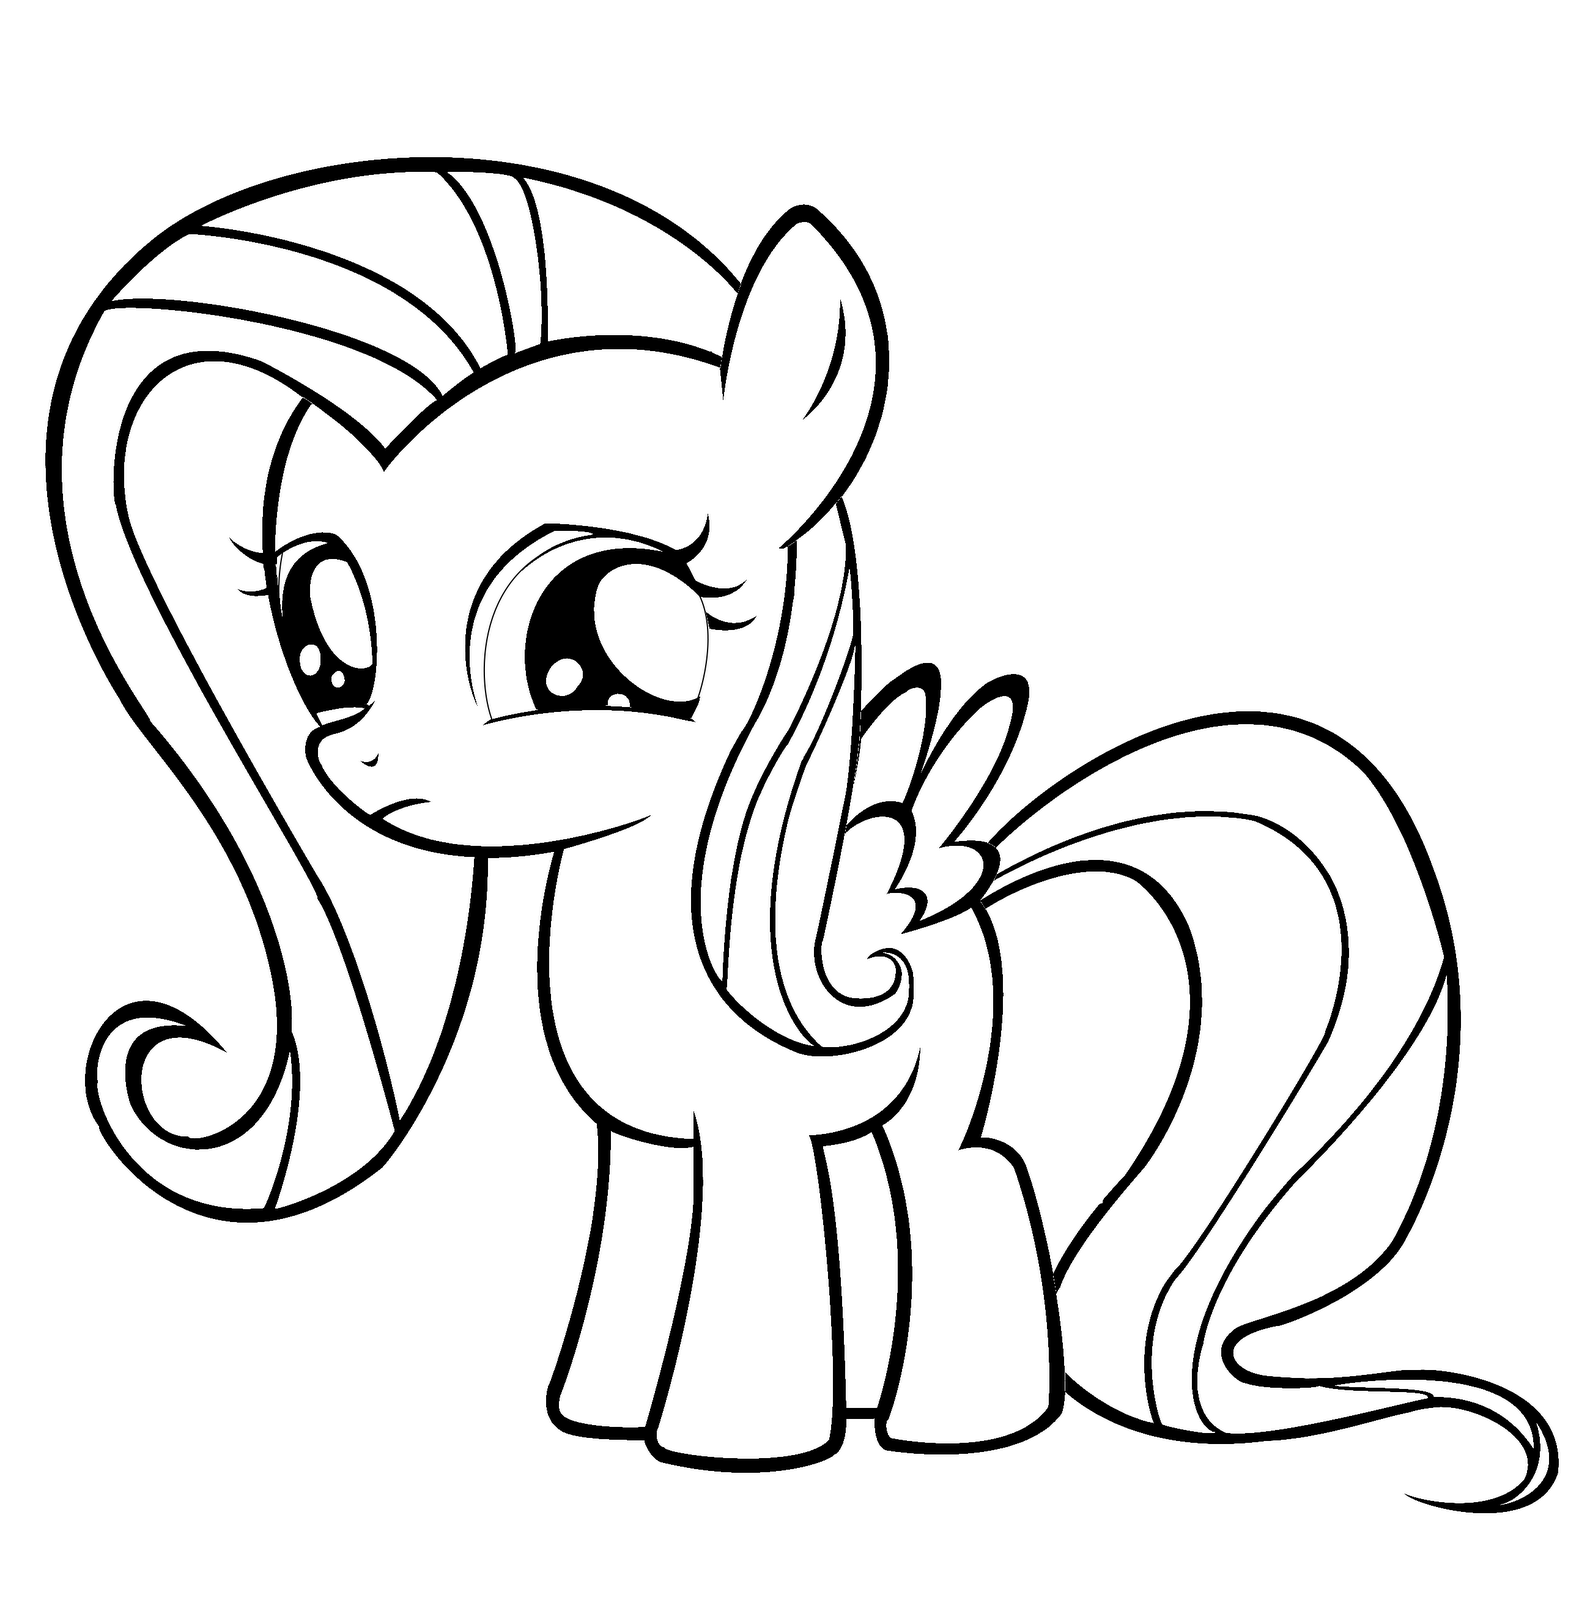 Fluttershy Coloring Pages Best Coloring Pages For Kids Coloring Sheet